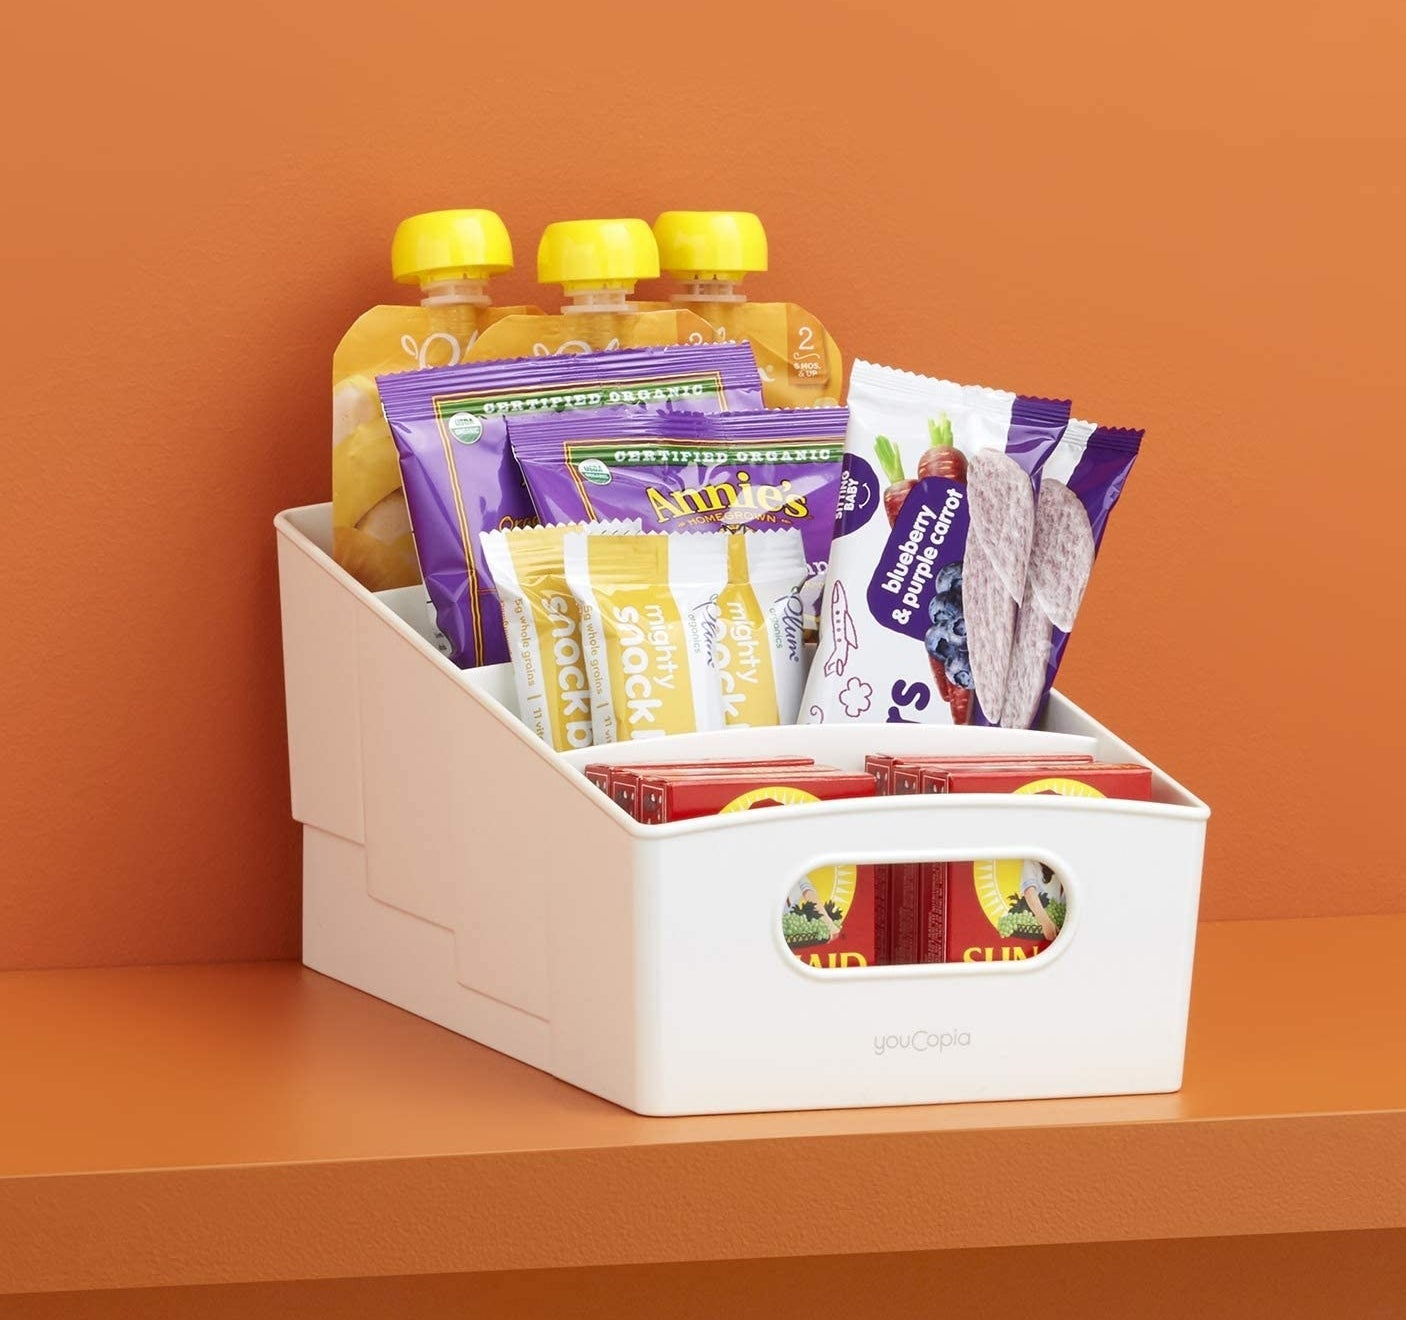 A tiered snack shelf loaded up with sweet treats